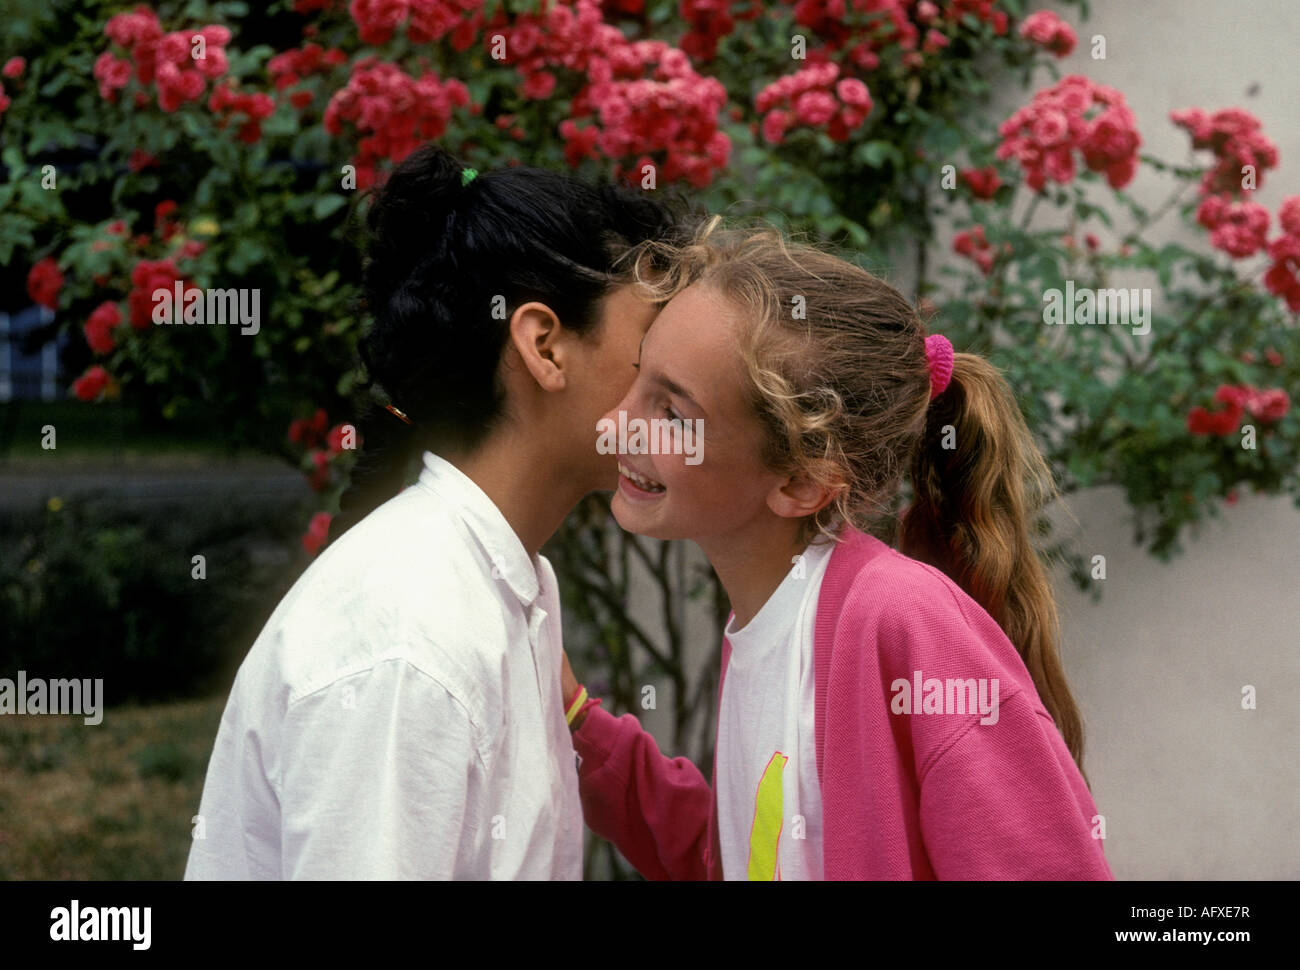 Greeting kiss friends stock photos greeting kiss friends stock two french girls french girls friends greeting kissing hello kiss on m4hsunfo